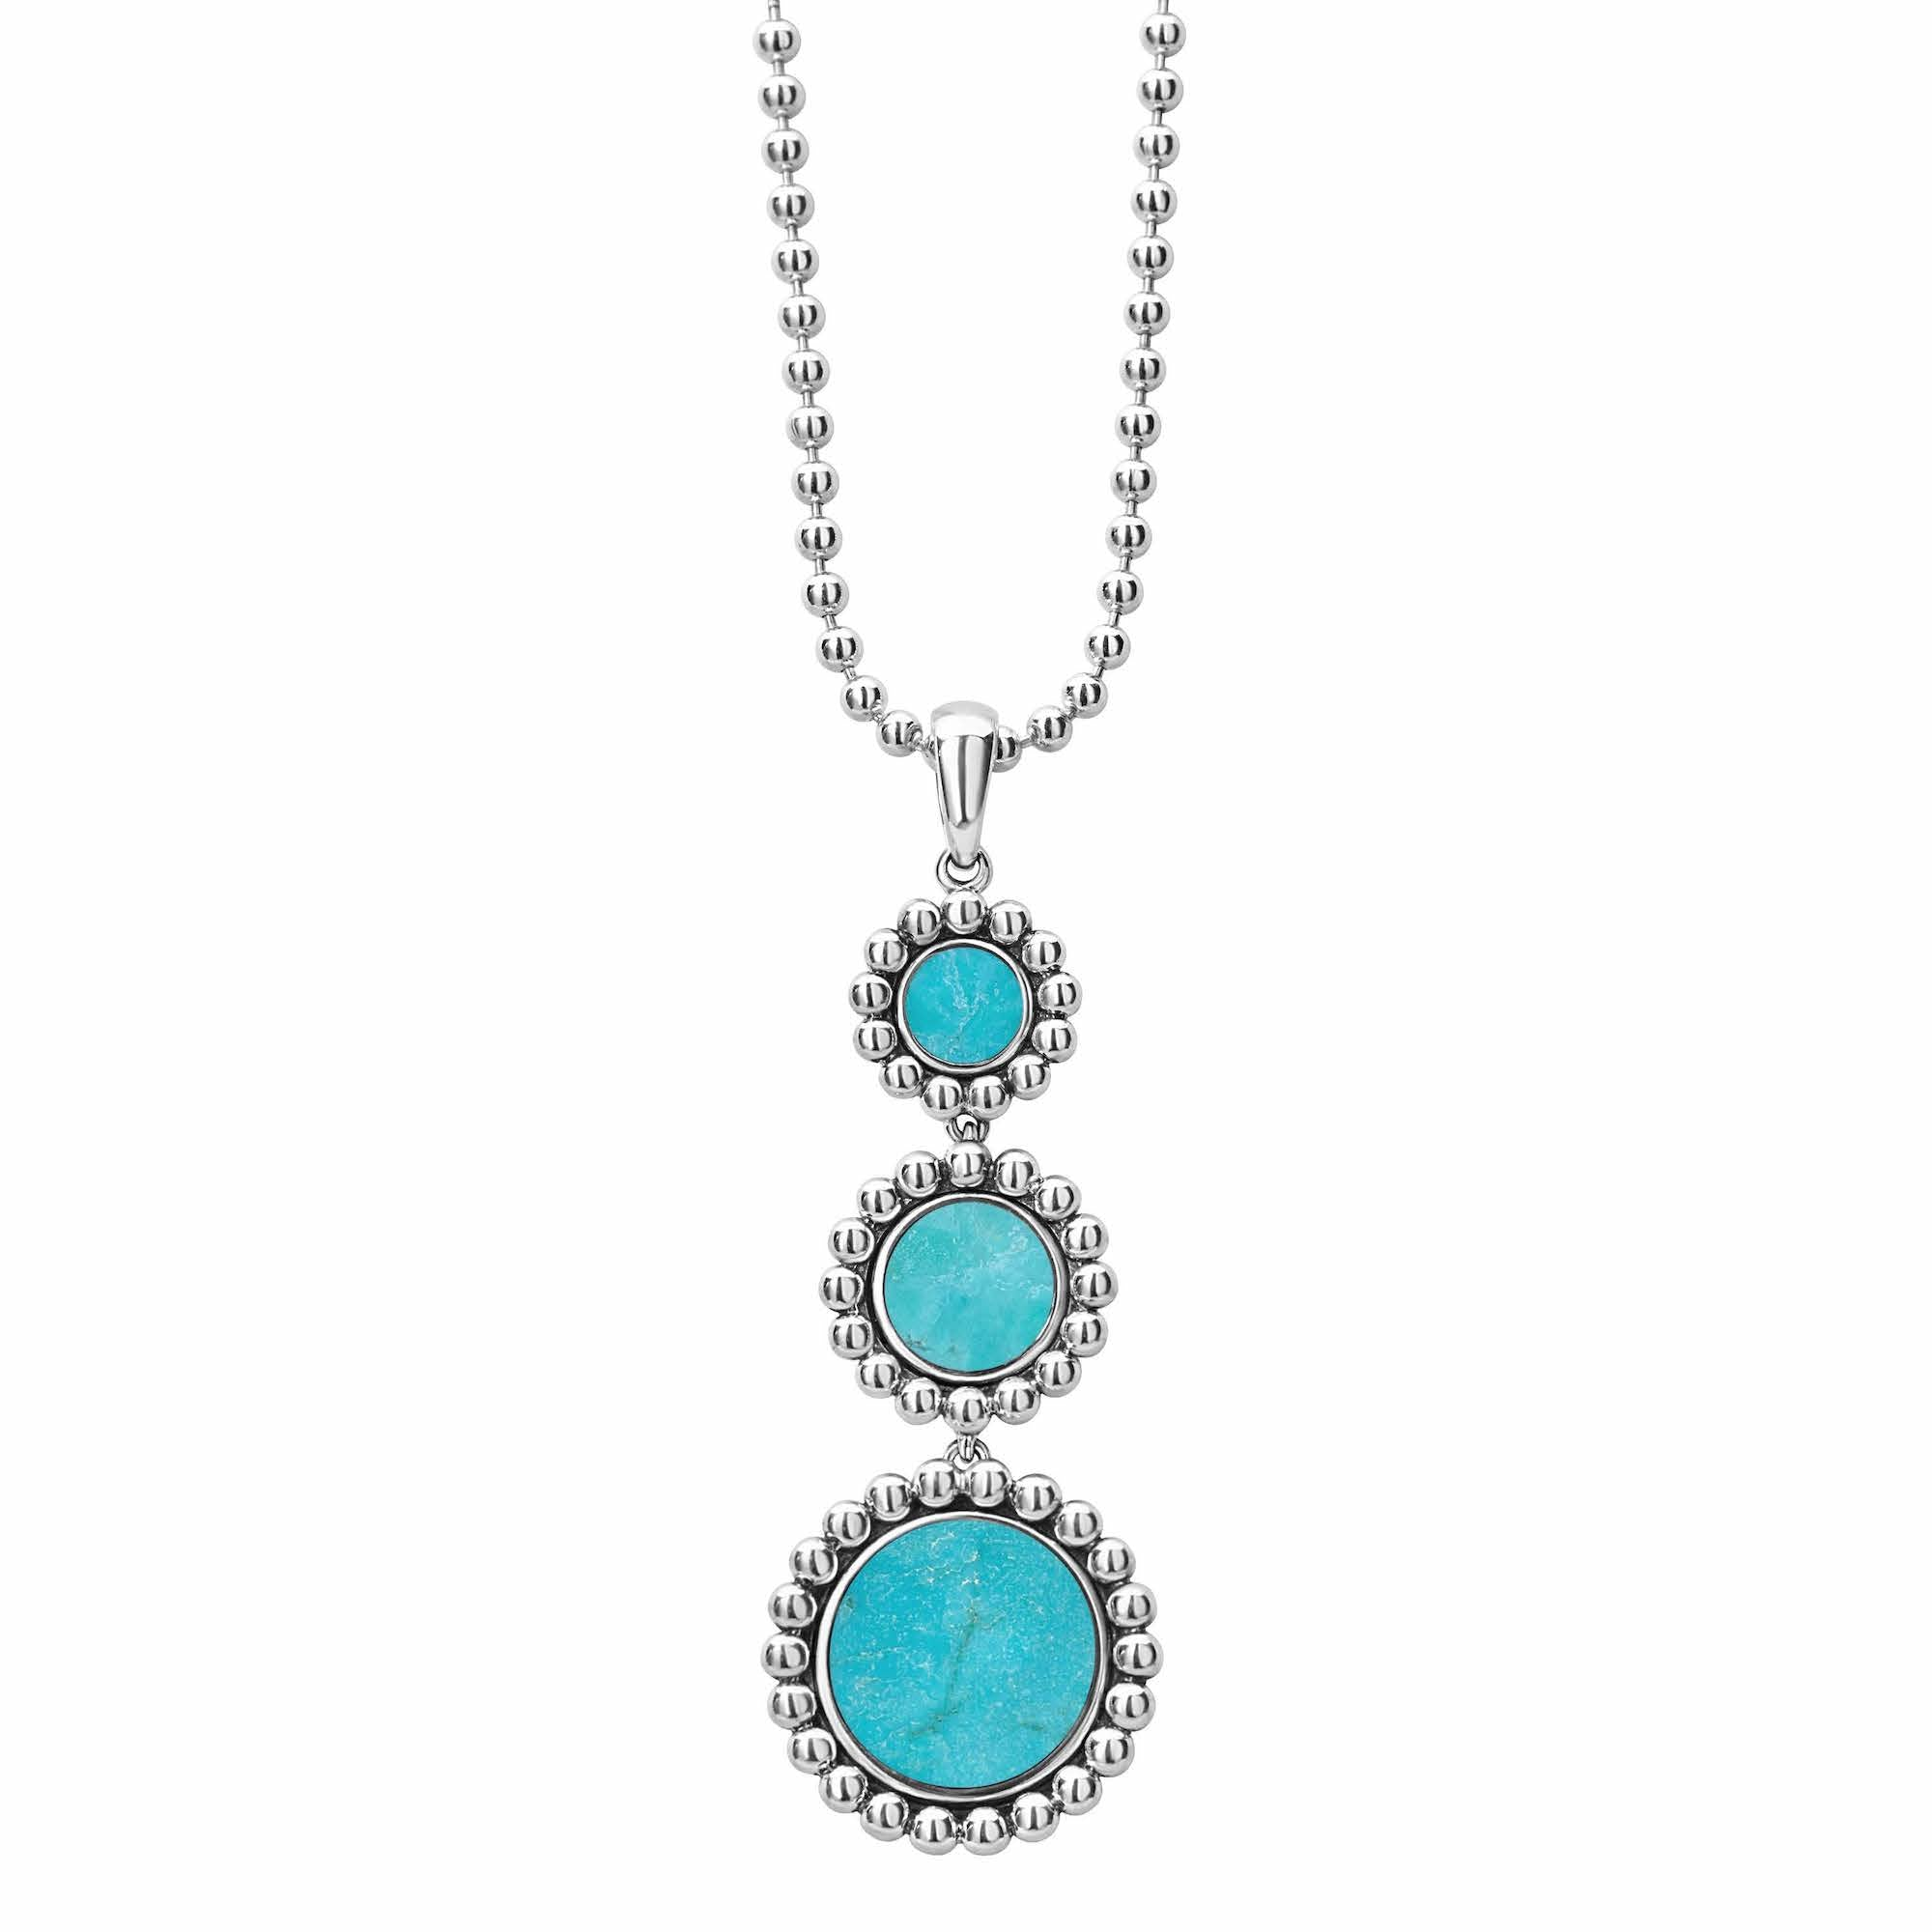 Maya Gemstone Pendant Necklace Turquoise